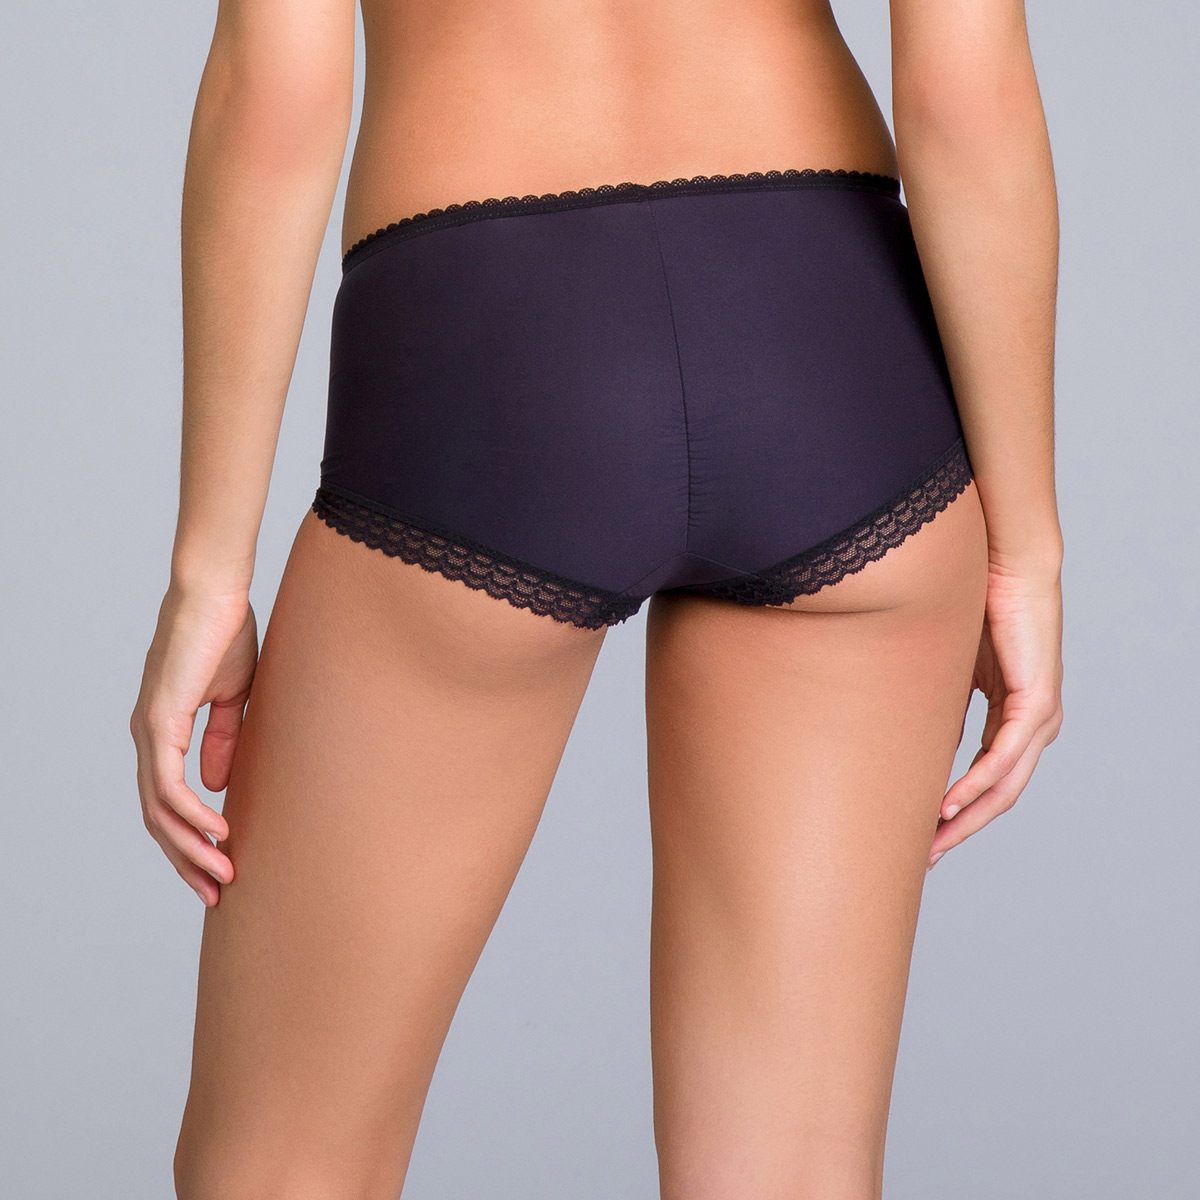 Shorts in Black Lace - Invisible Elegance - PLAYTEX